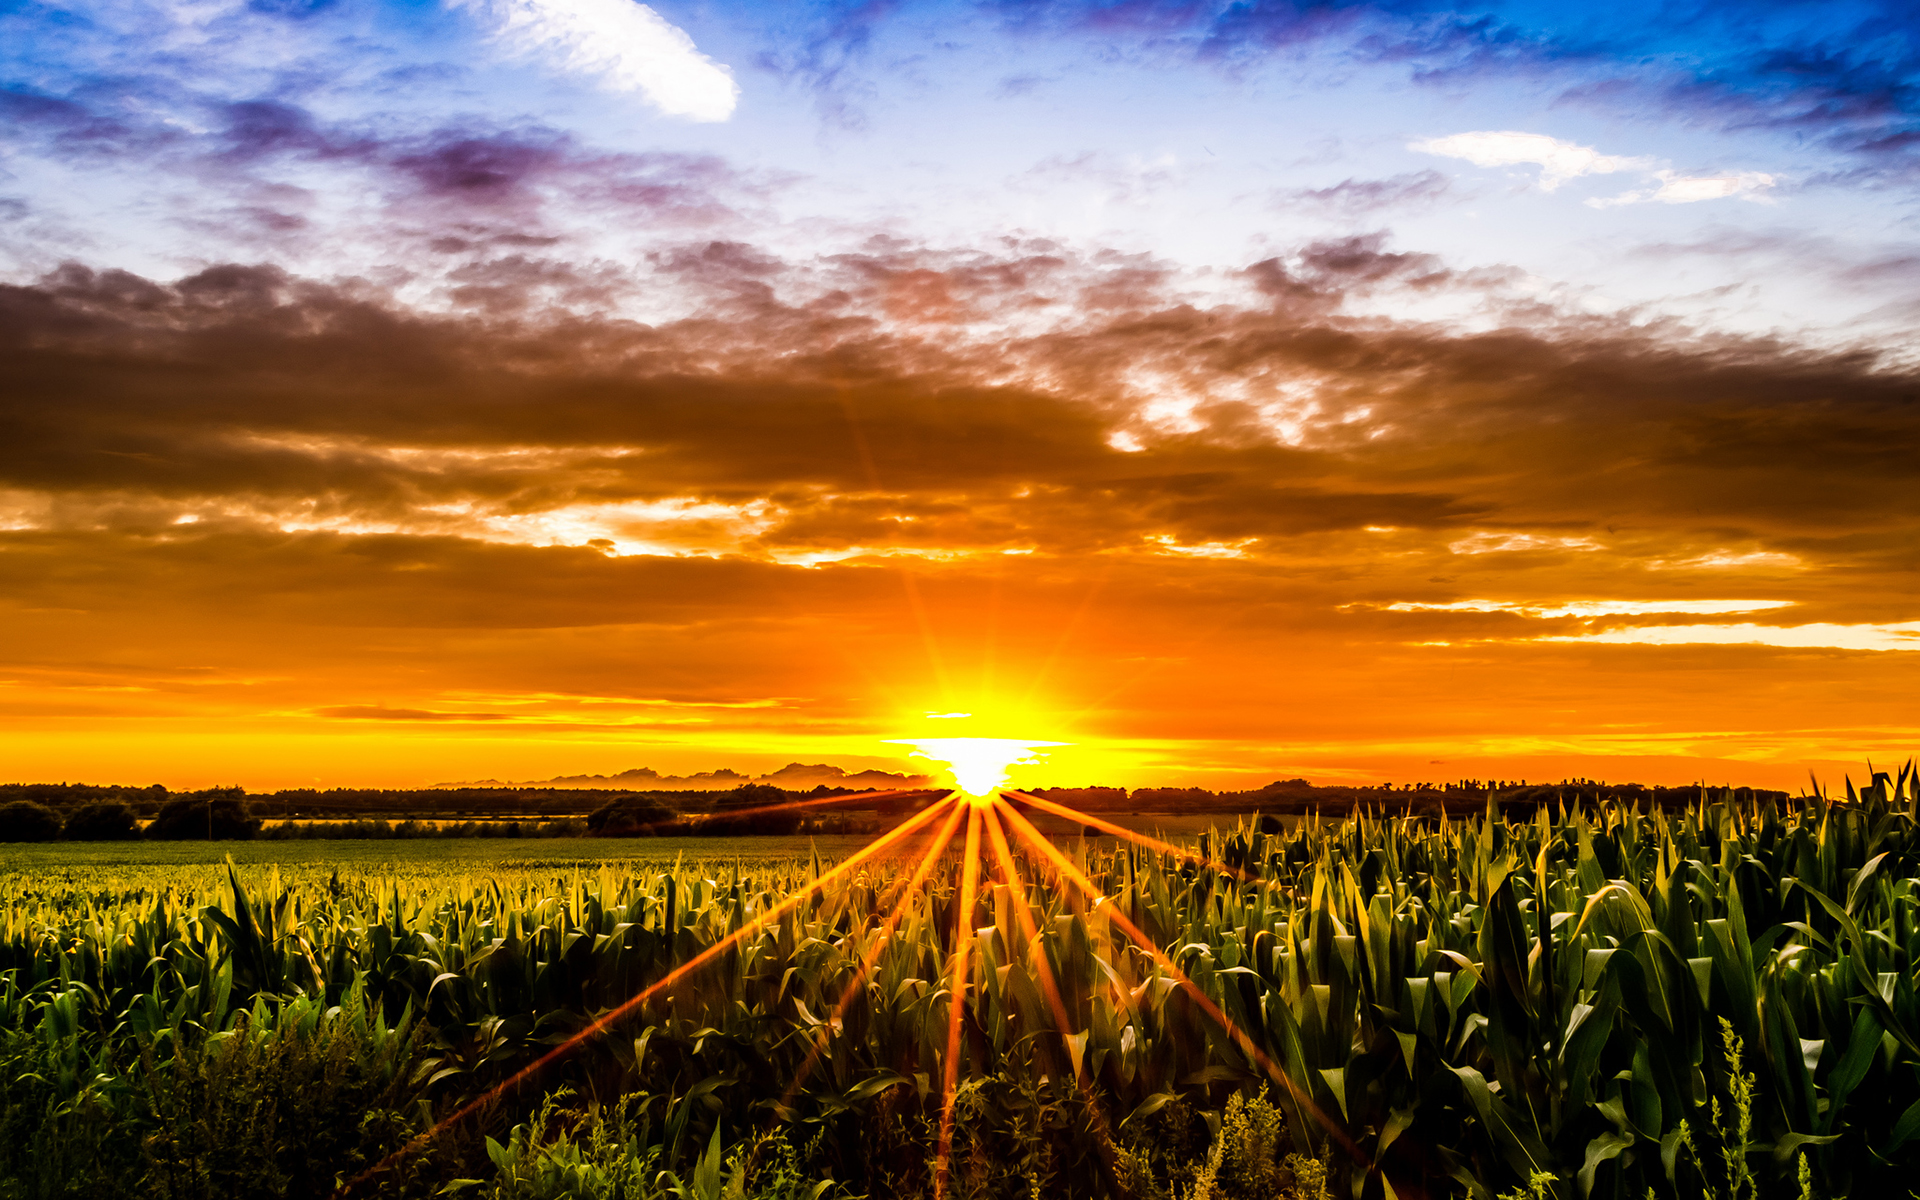 More efficient use of sunlight can improve crop yields